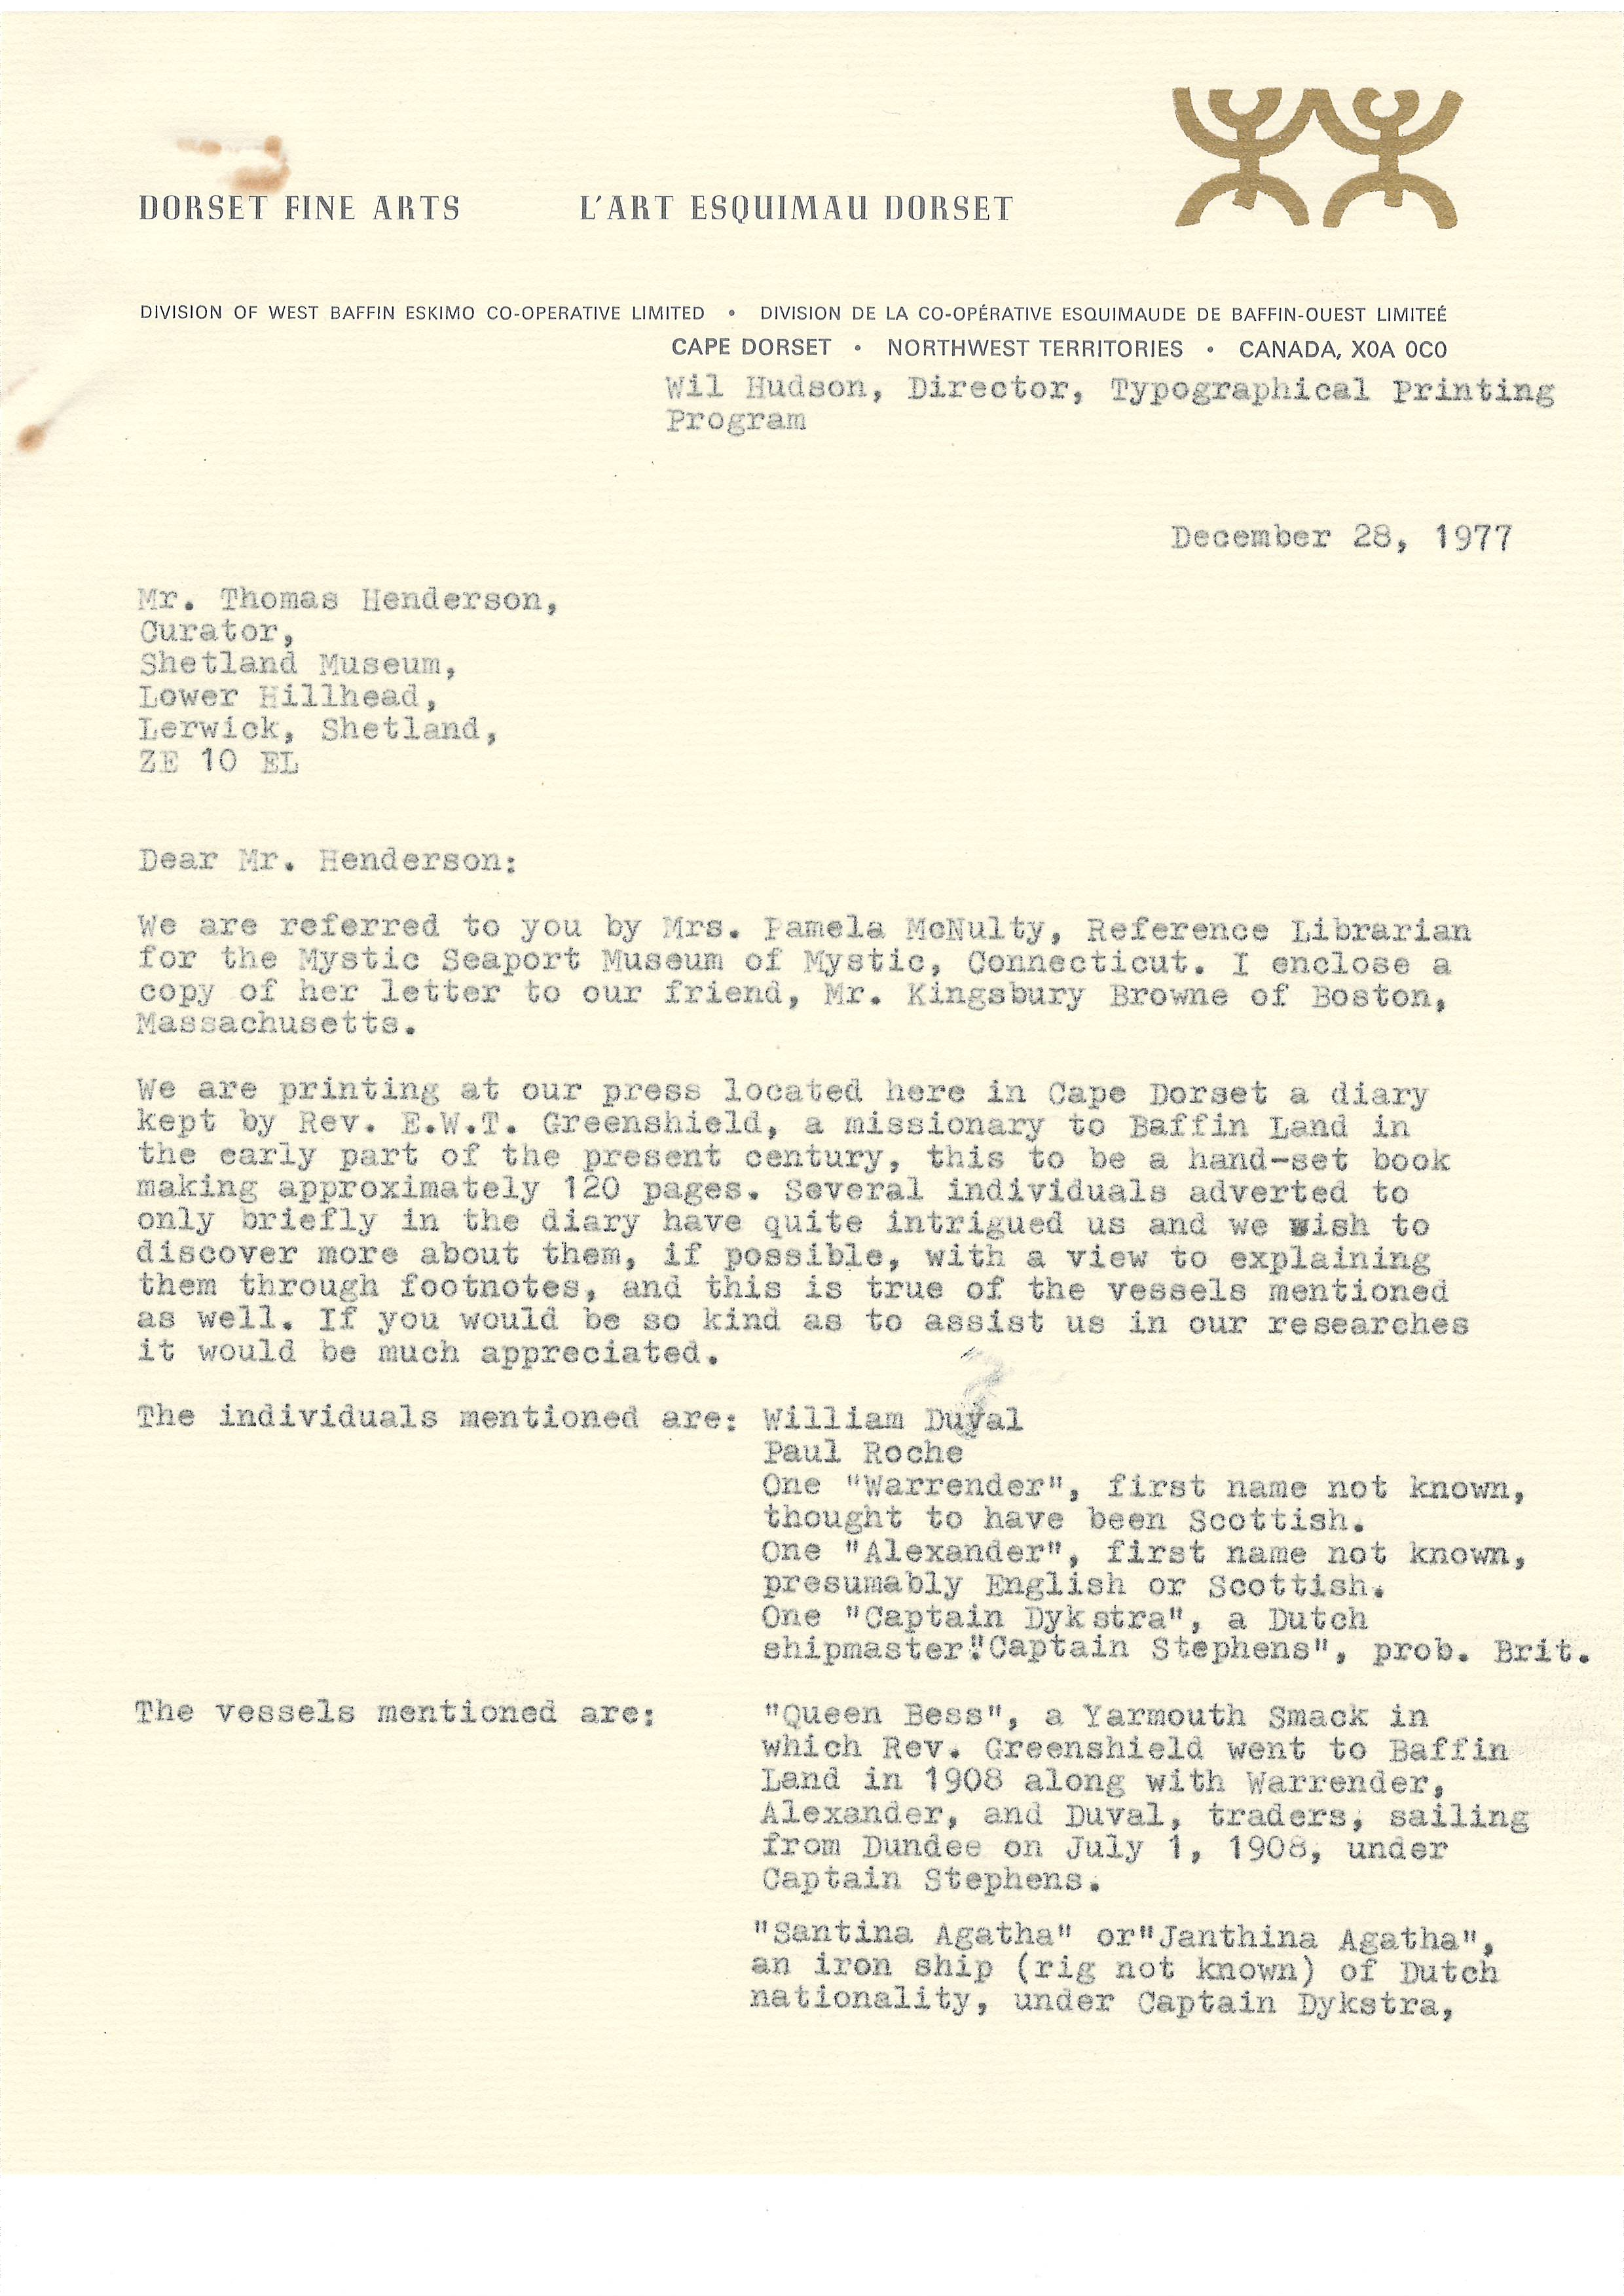 Scanned correspondence collection Laura Walz, Powell River British Columbia (1 of 2)